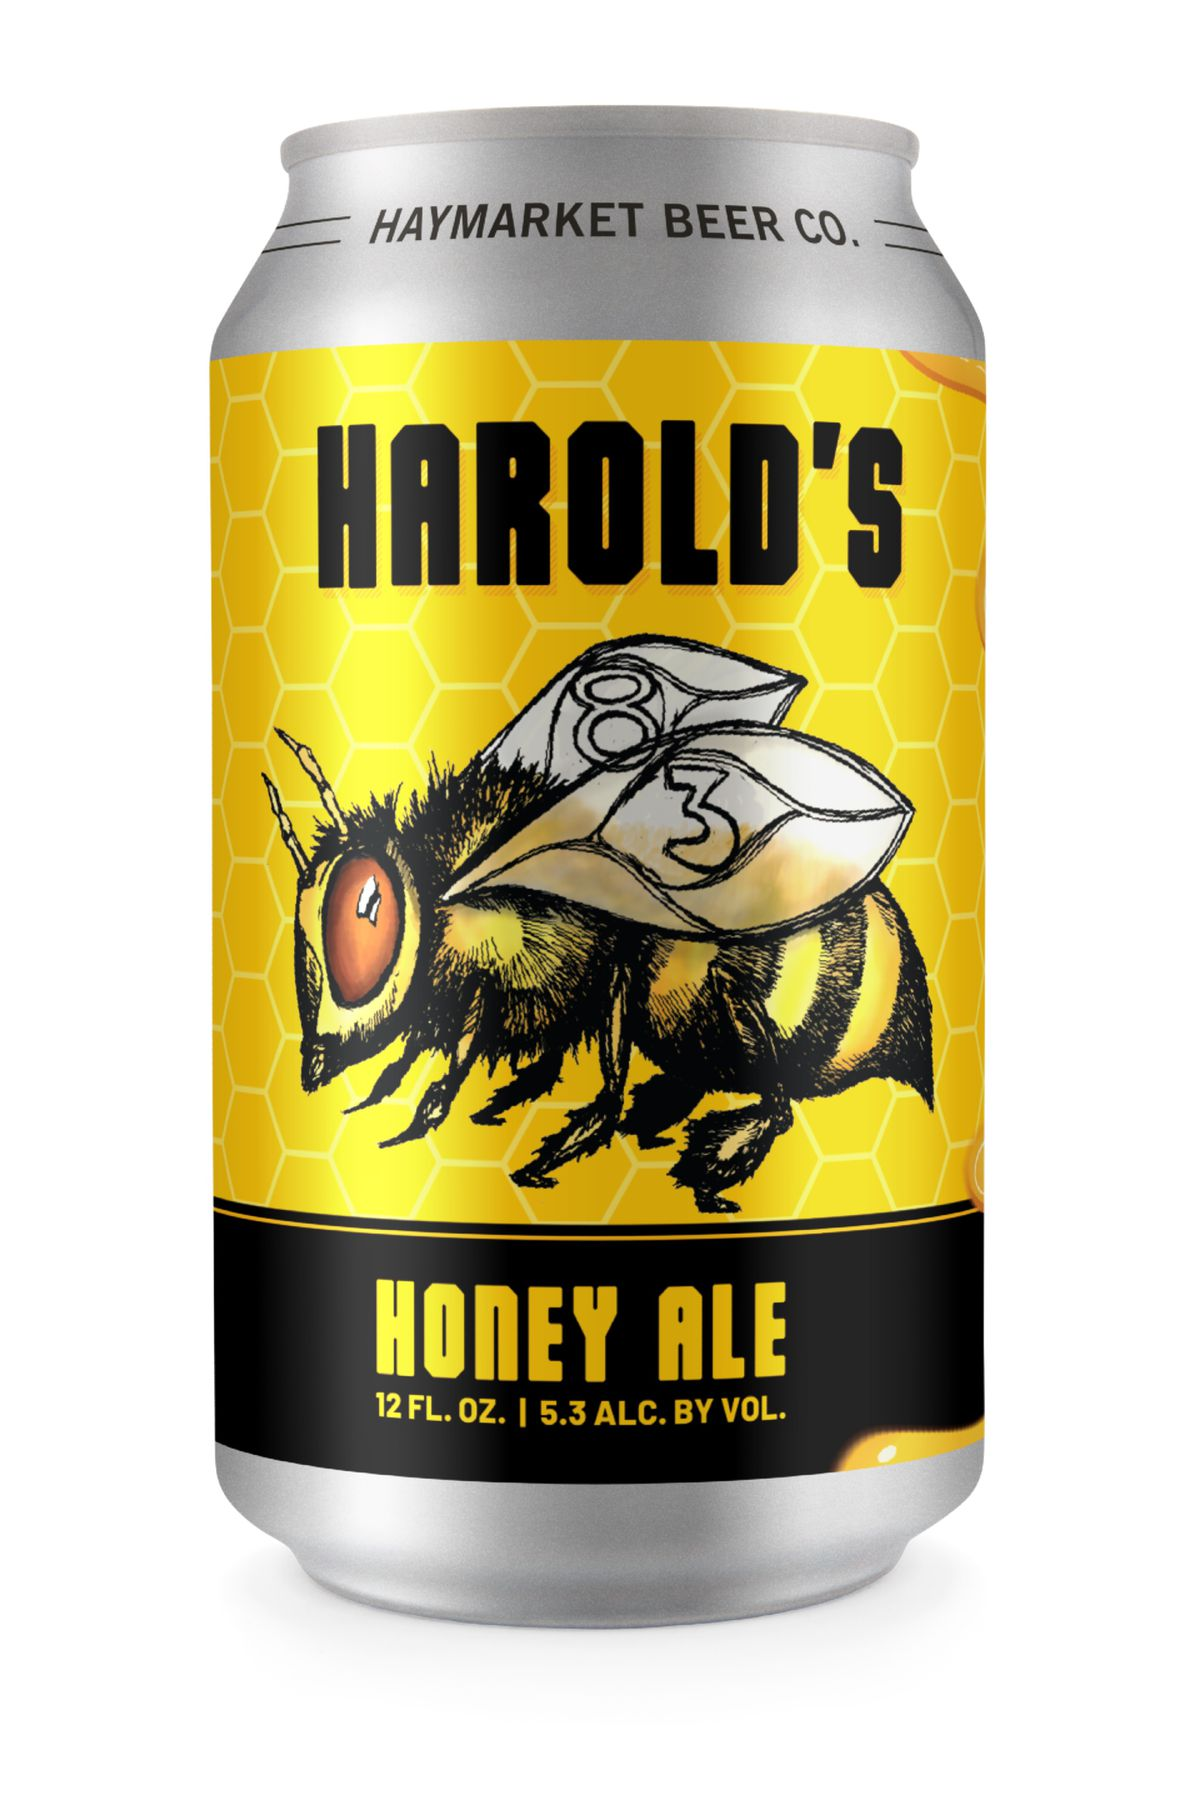 Harold's '83 Honey Ale will soon be available in cans.